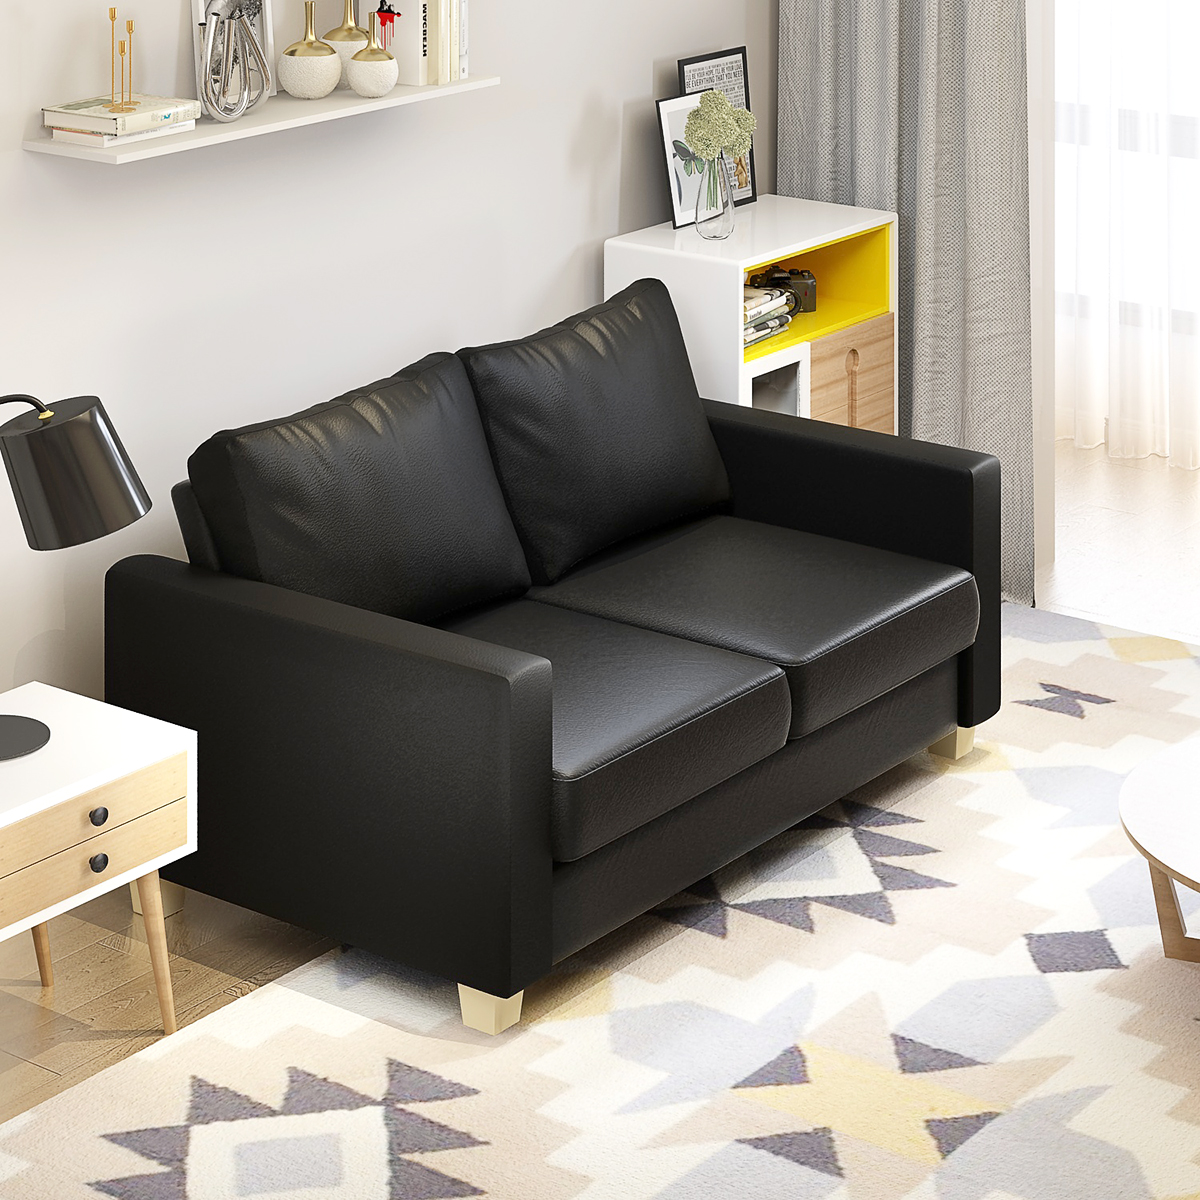 Brown Leather Sofa Modern Decorating Ideas: 2 Seater Sofa Black Or Brown Faux Leather Modern Design